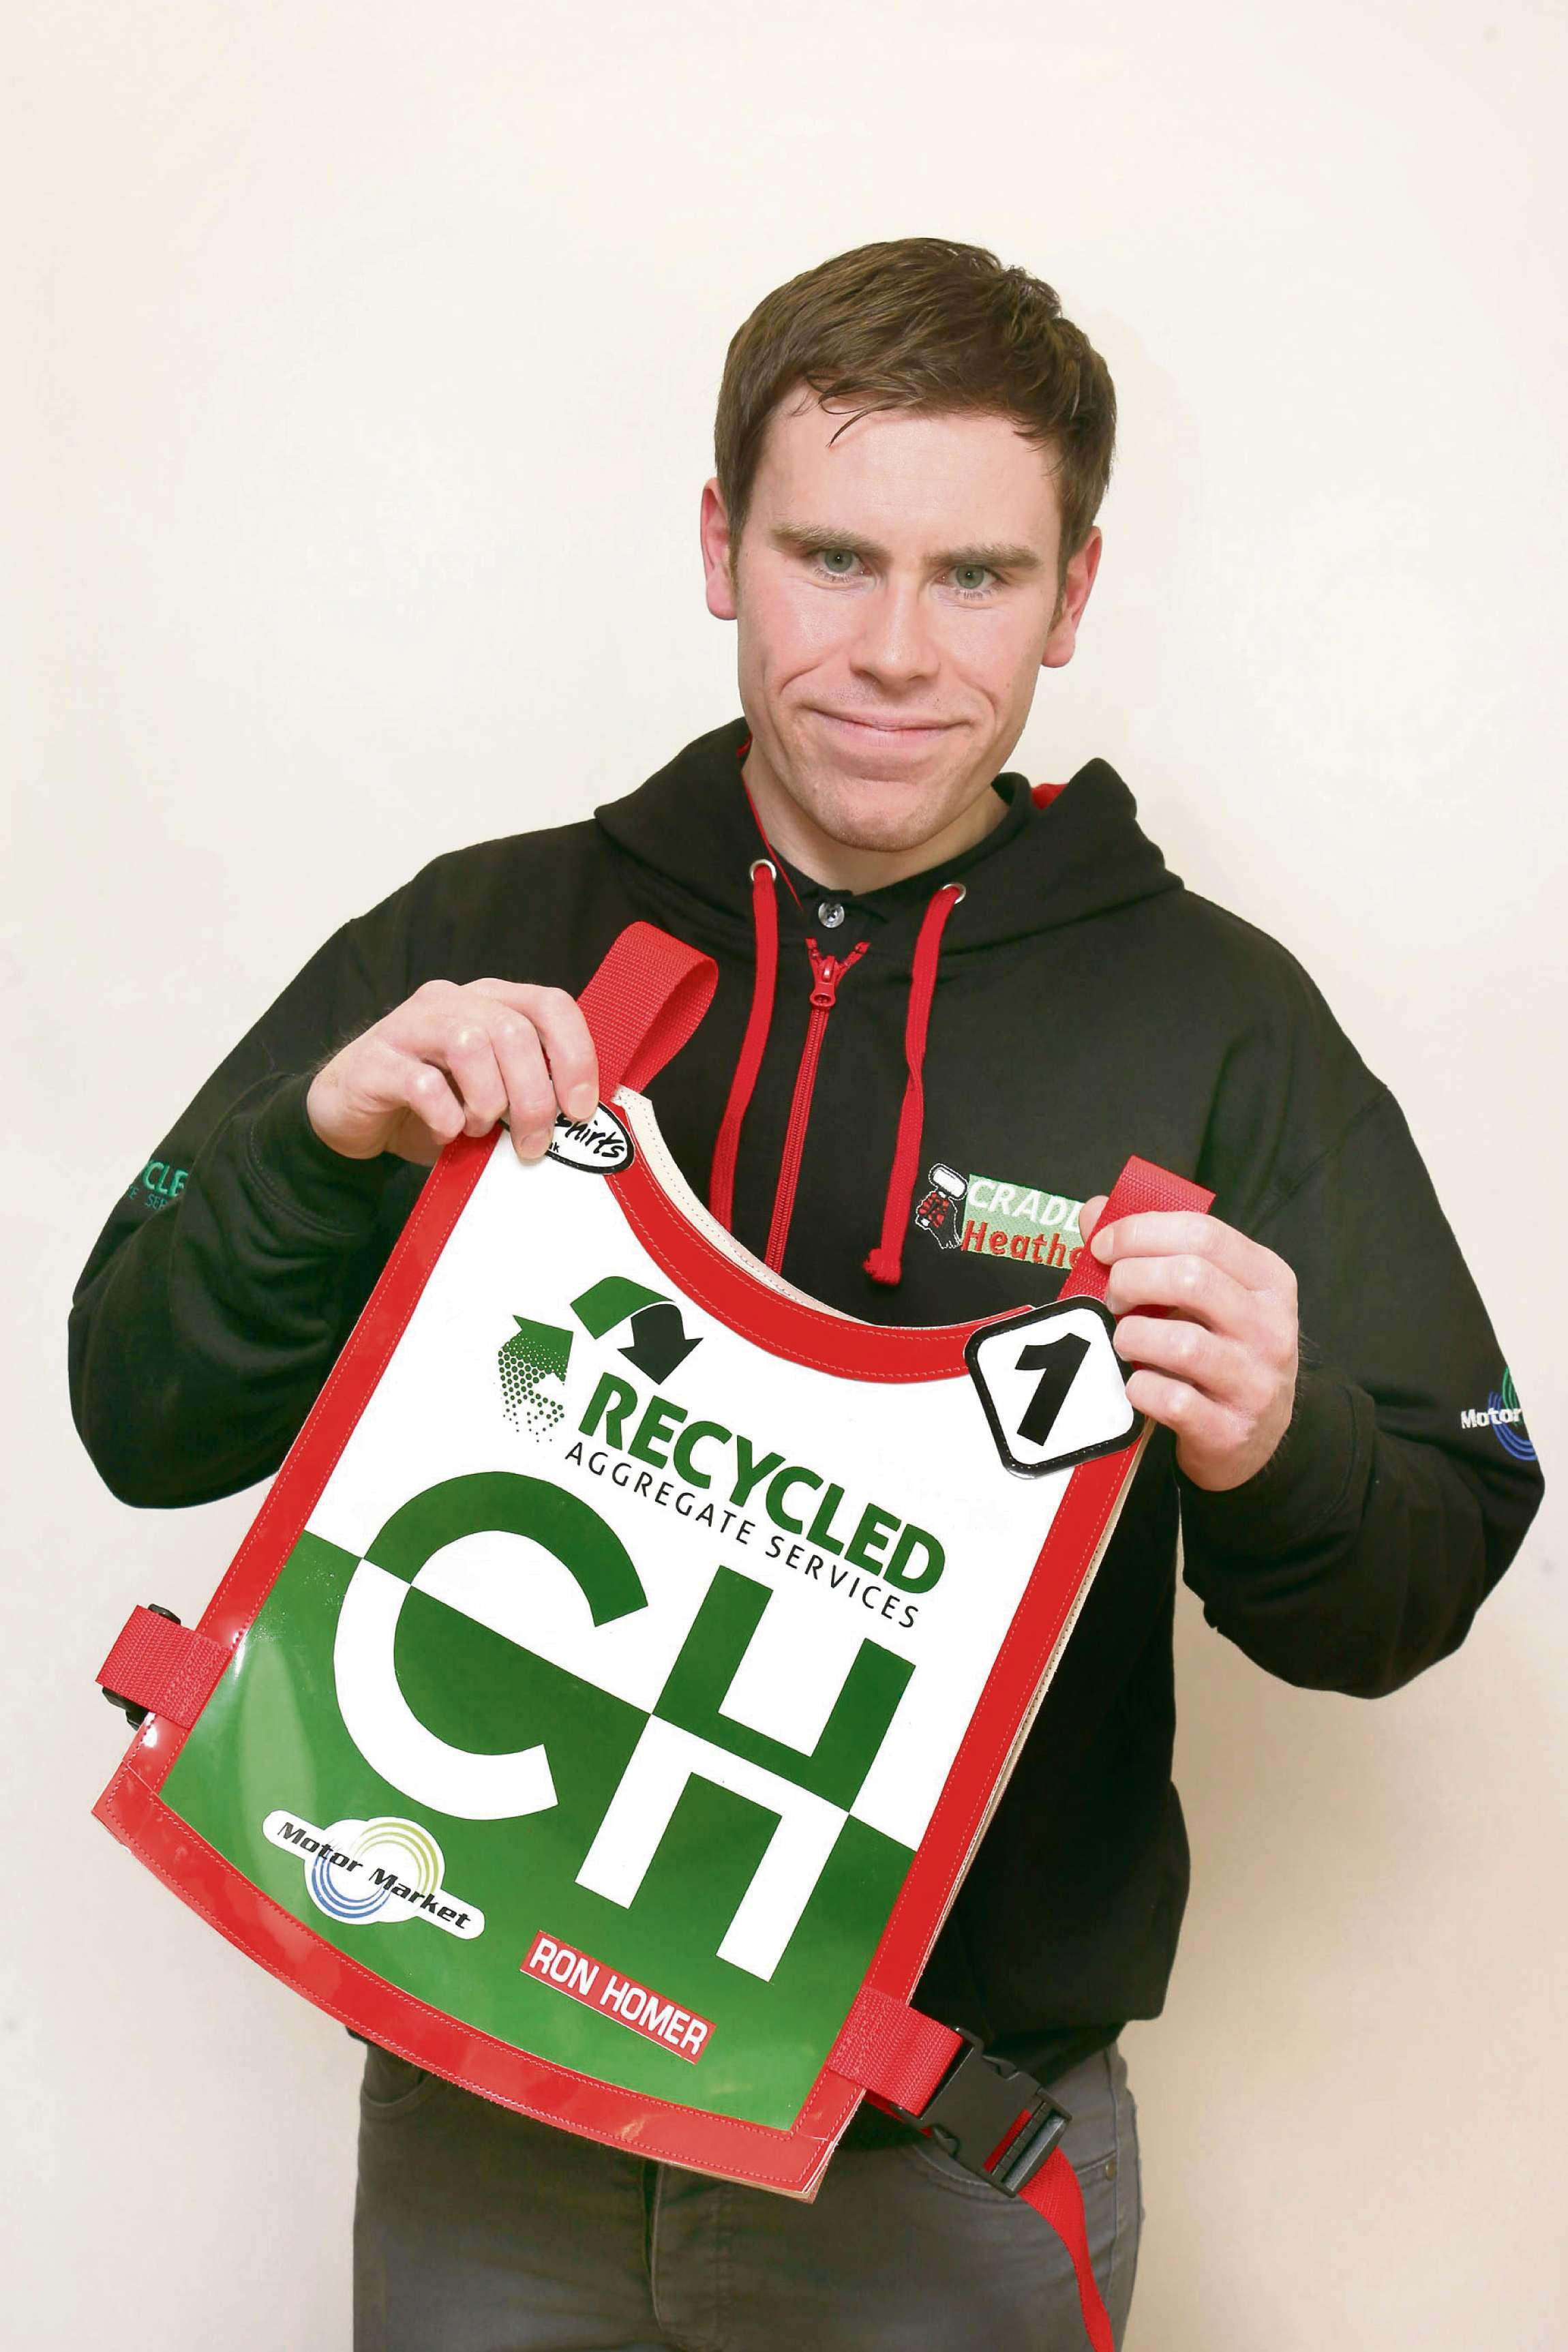 Cradley manager Will Pottinger with the new retro race jacket. Pic: John Hipkiss.